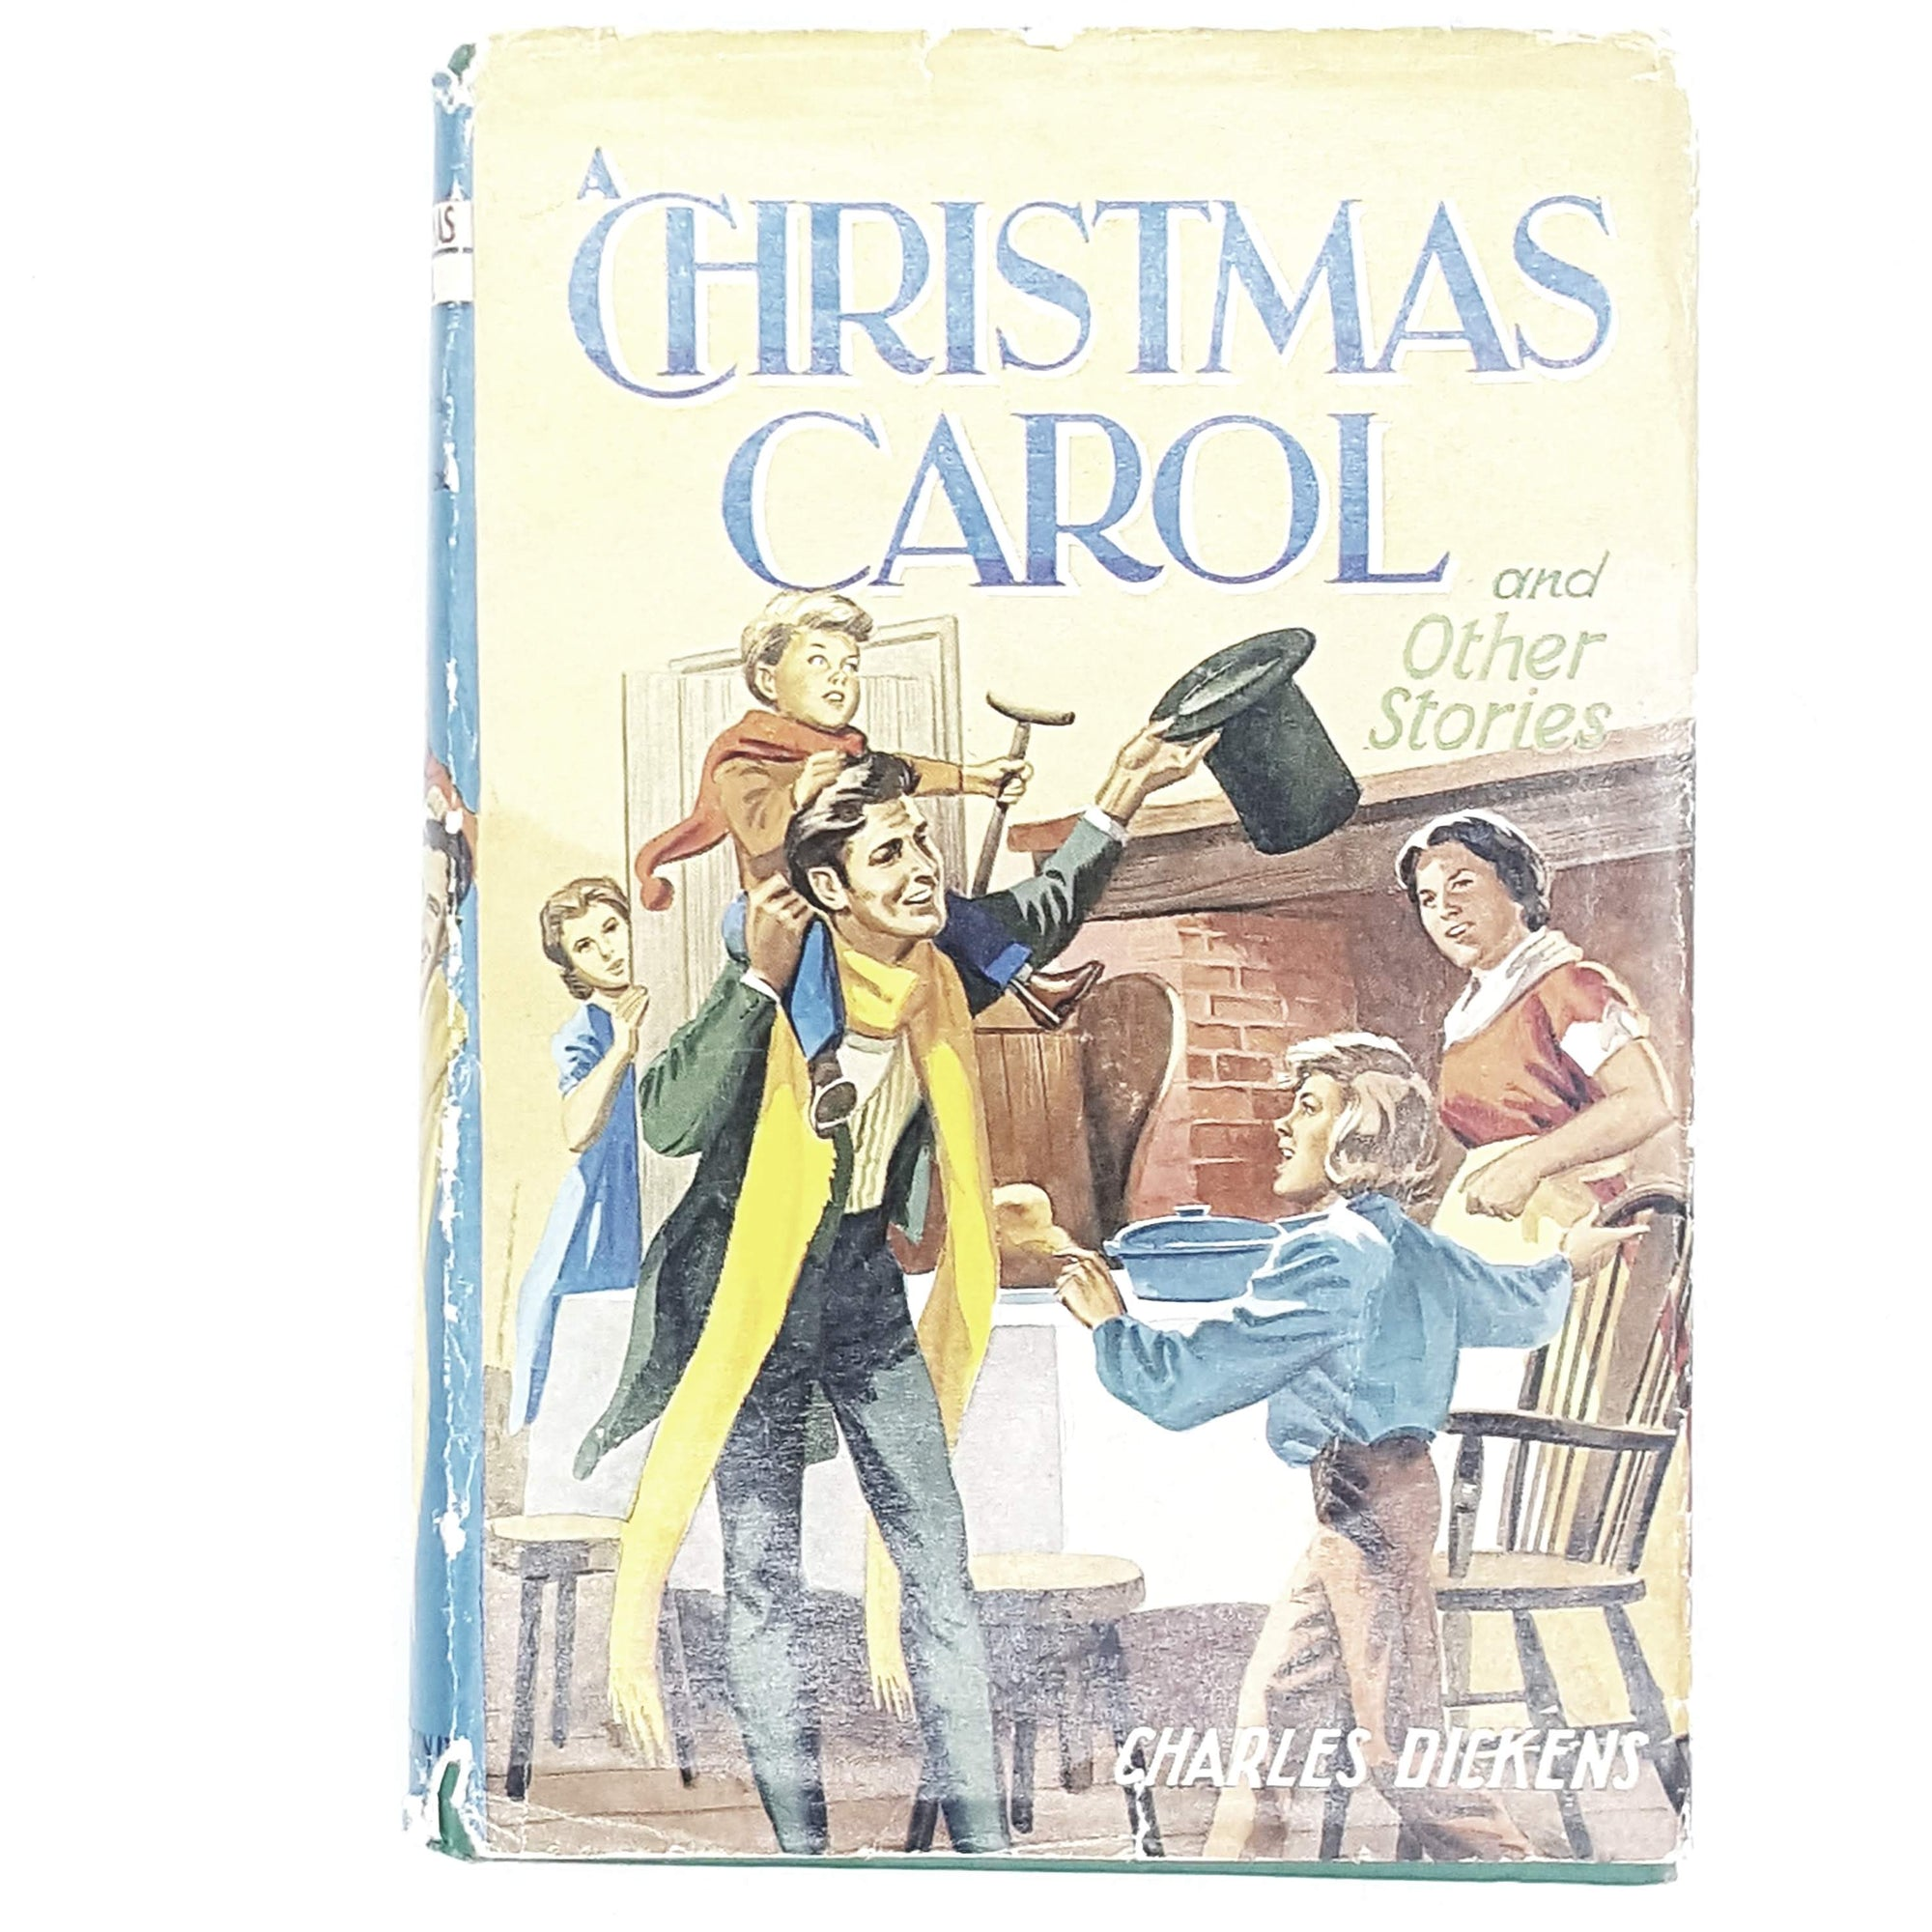 Charles Dickens's A Christmas Carol and Other Stories